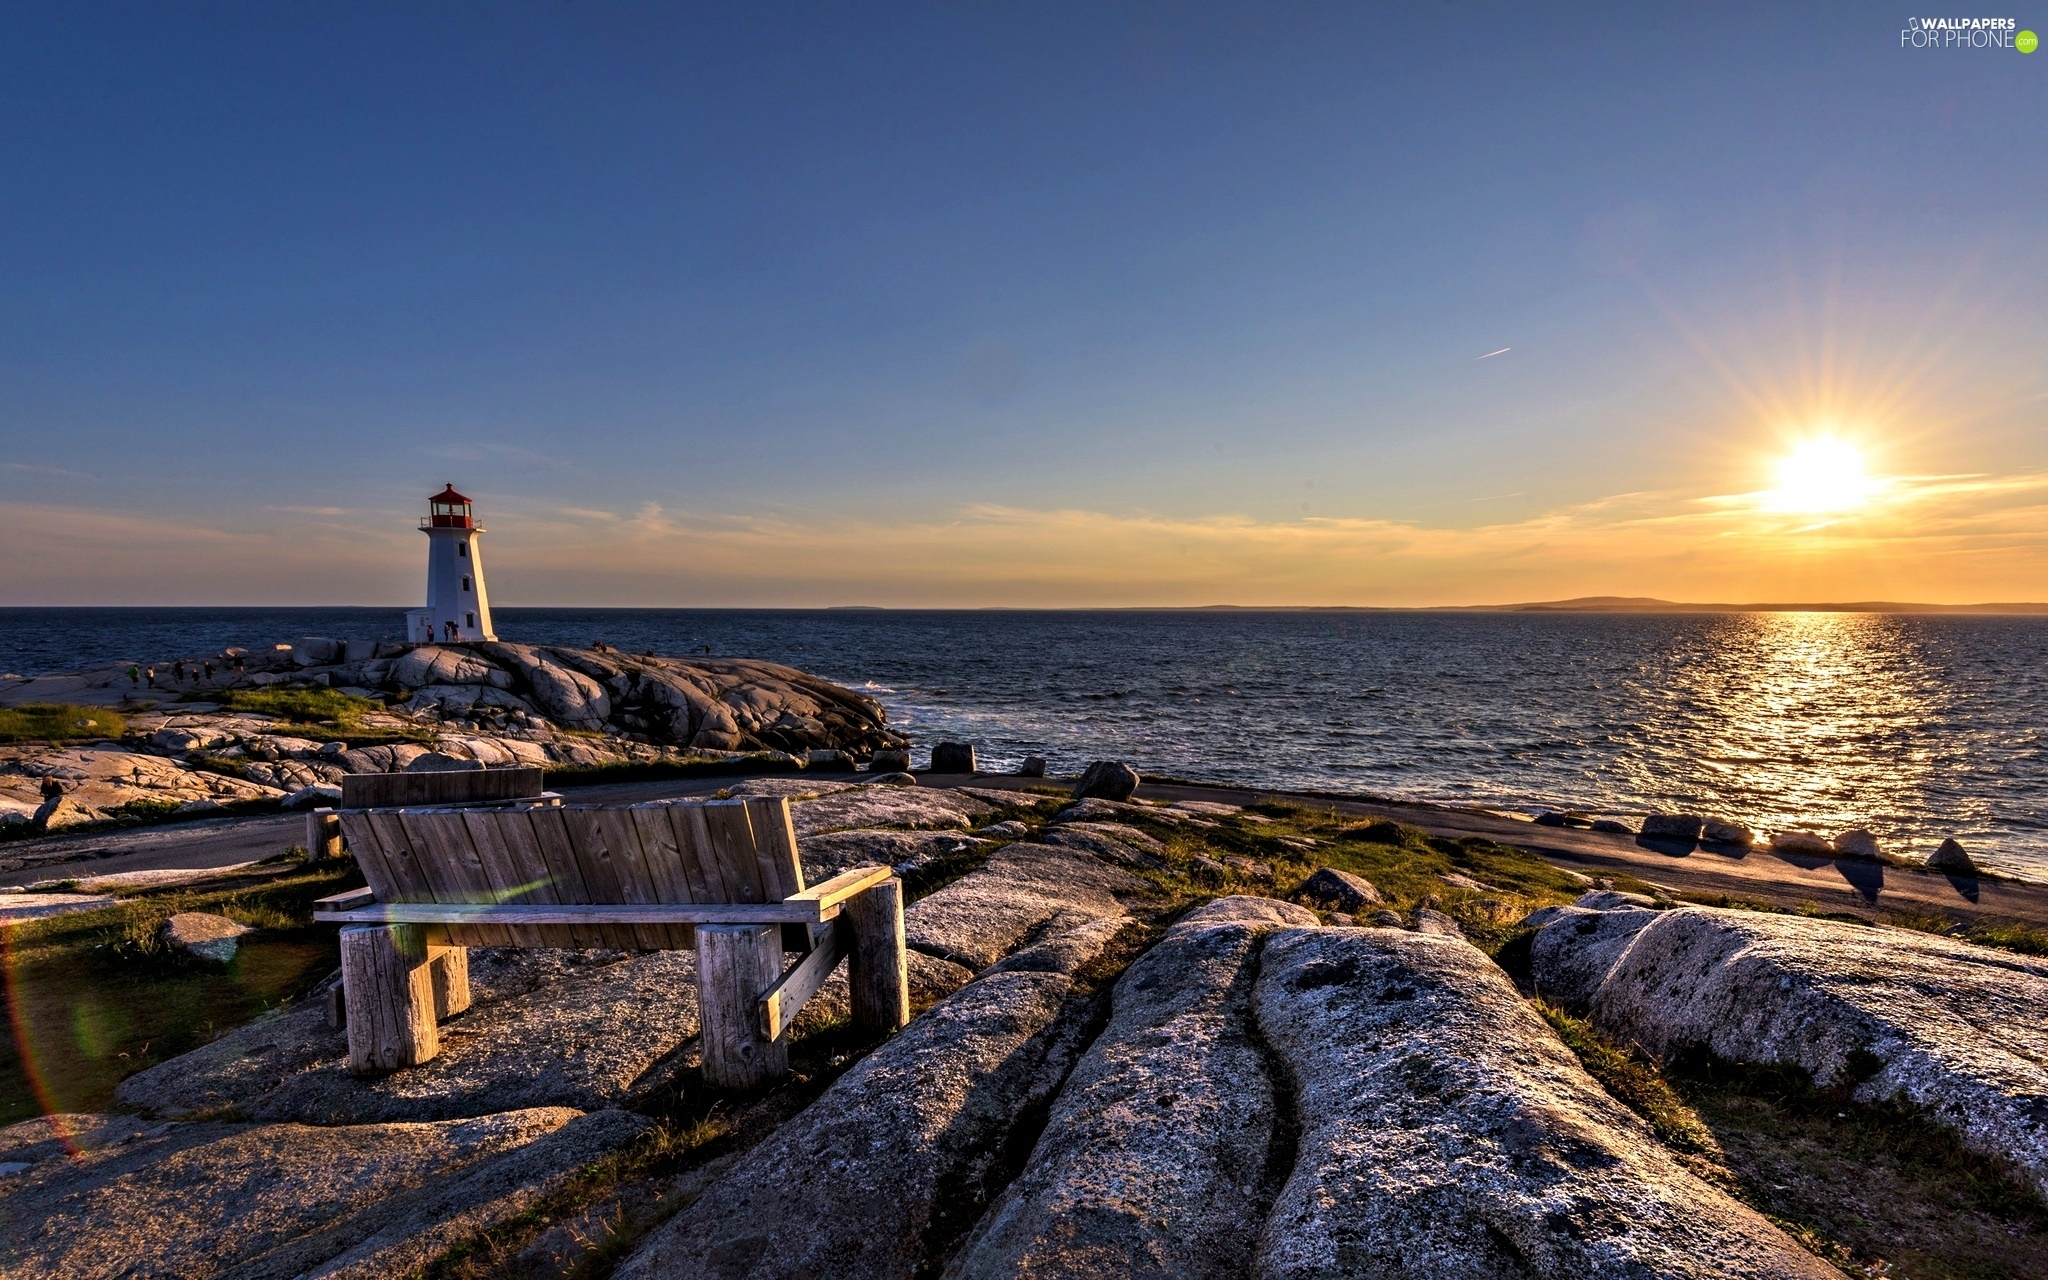 Bench, Lighthouses, sea, Stones rocks, Great Sunsets